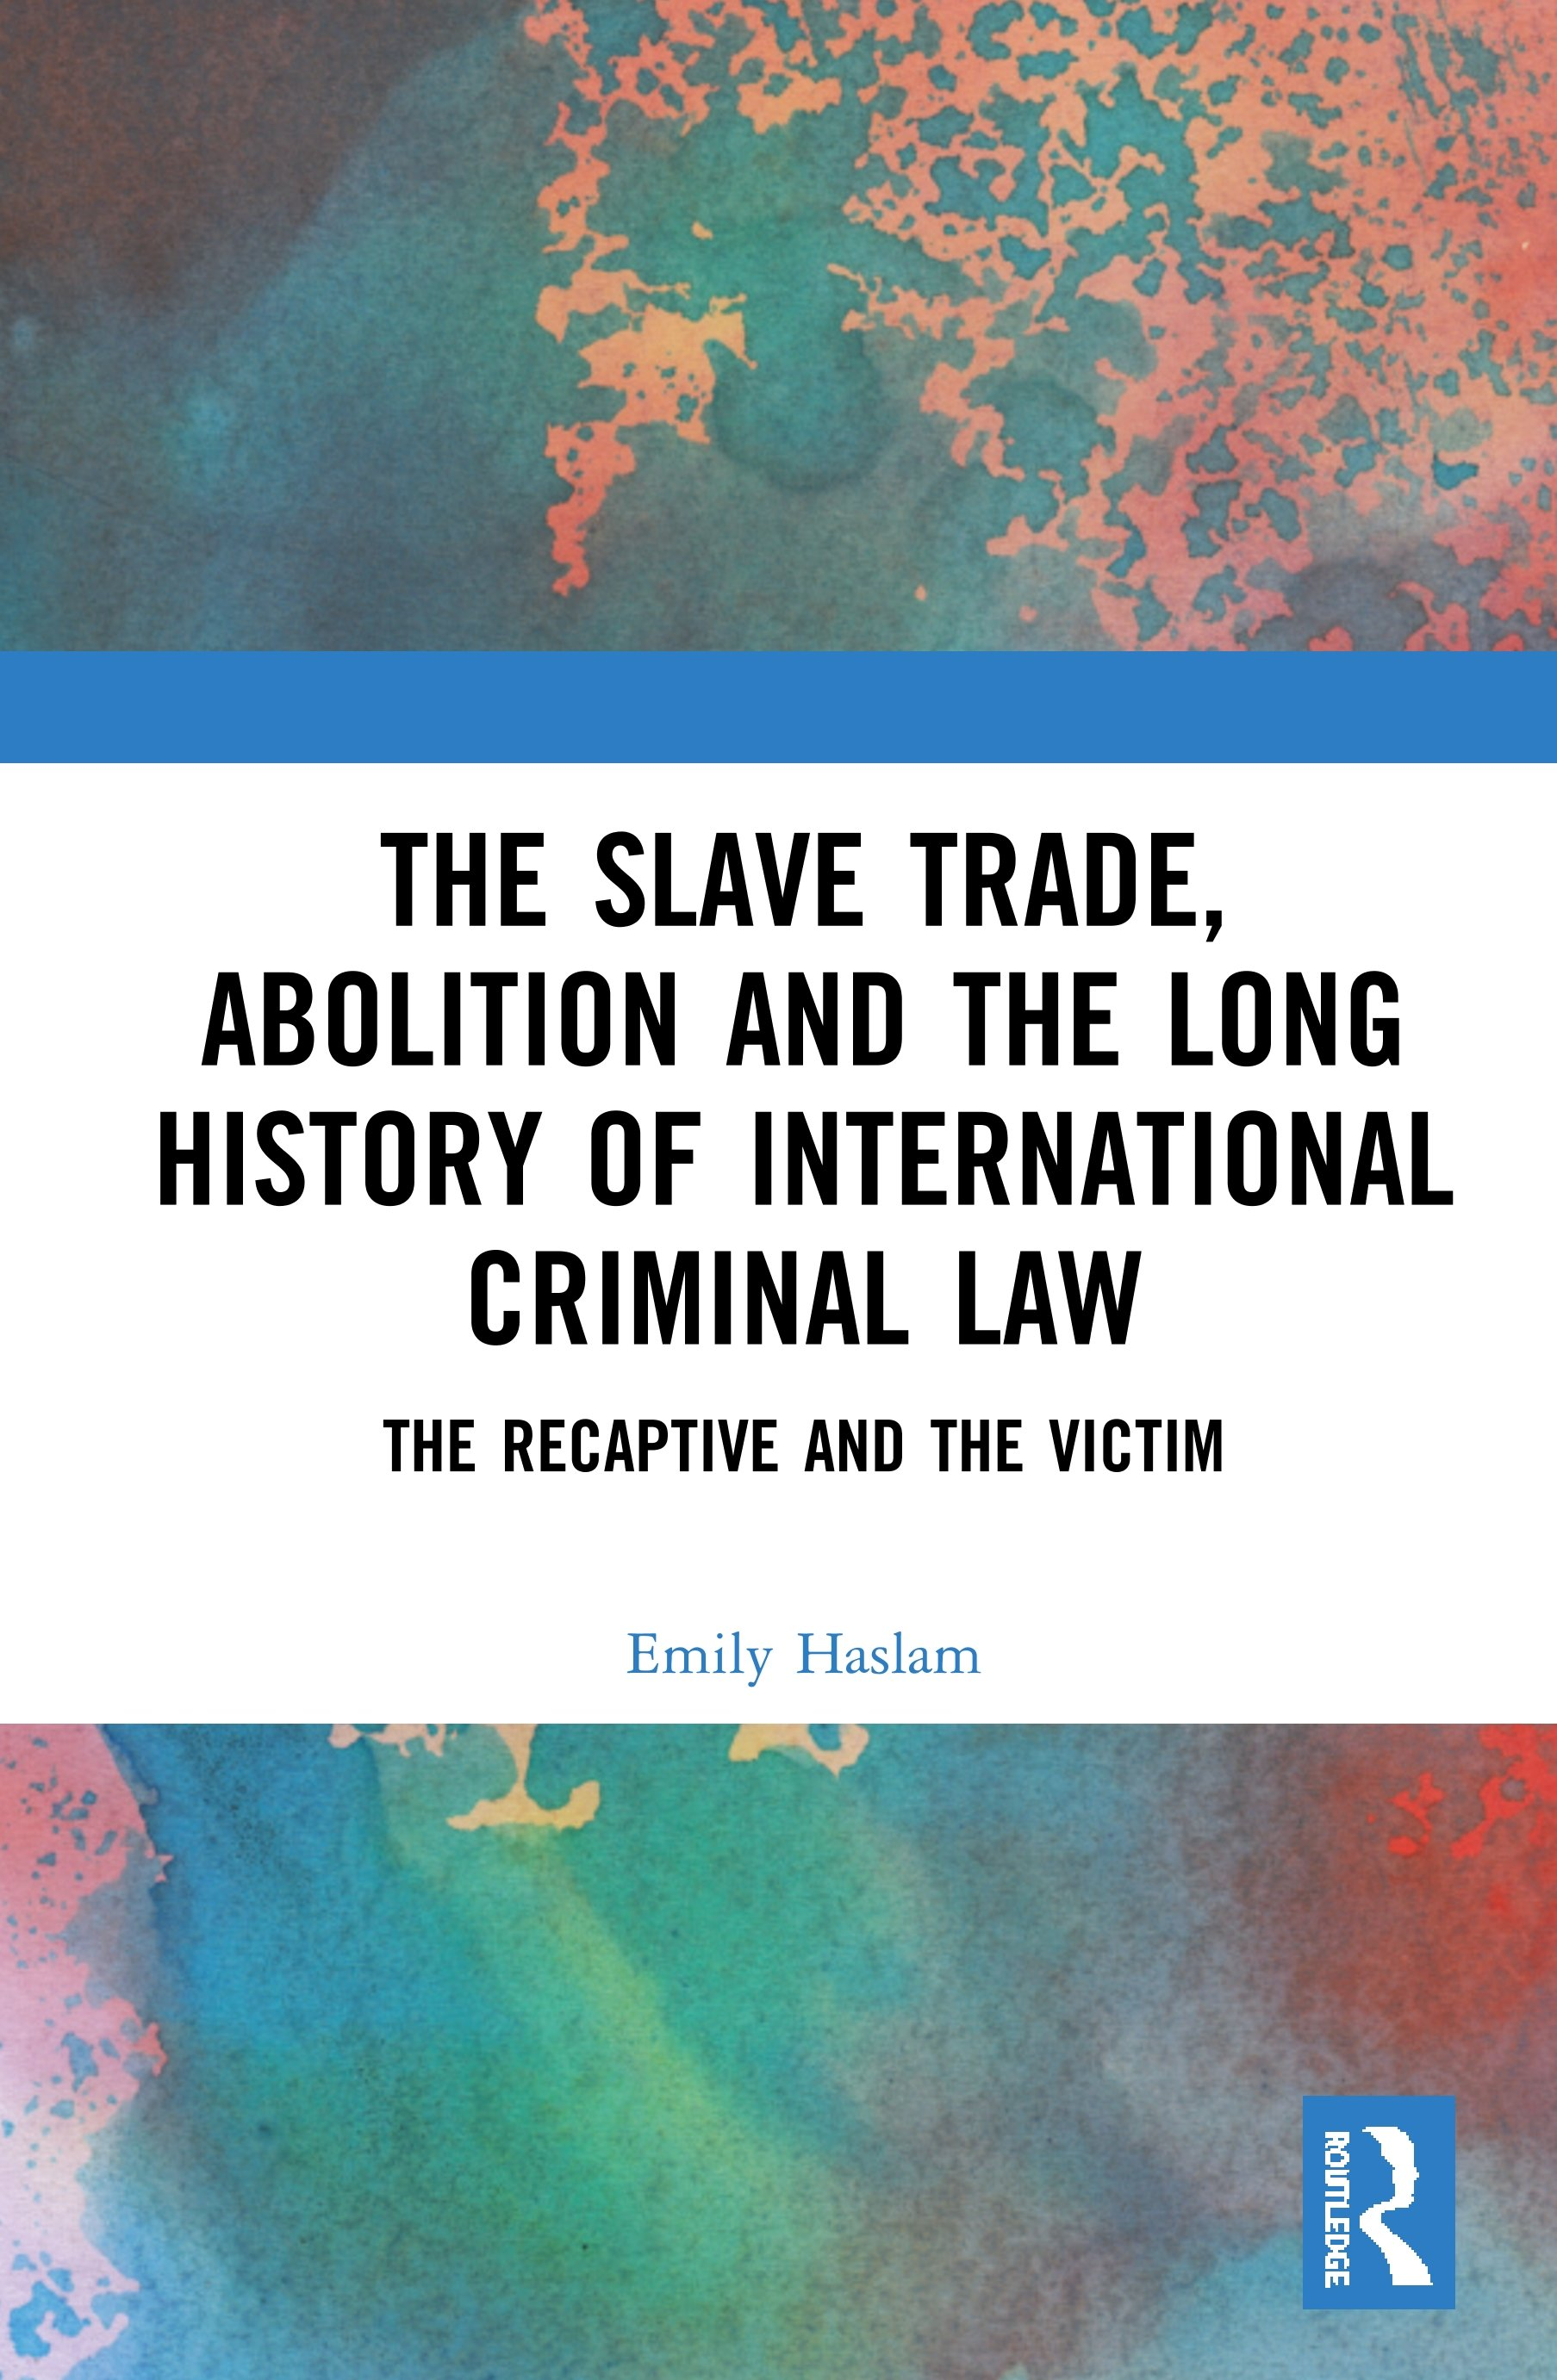 The Slave Trade, Abolition and the Long History of International Criminal Law: The Recaptive and the Victim book cover